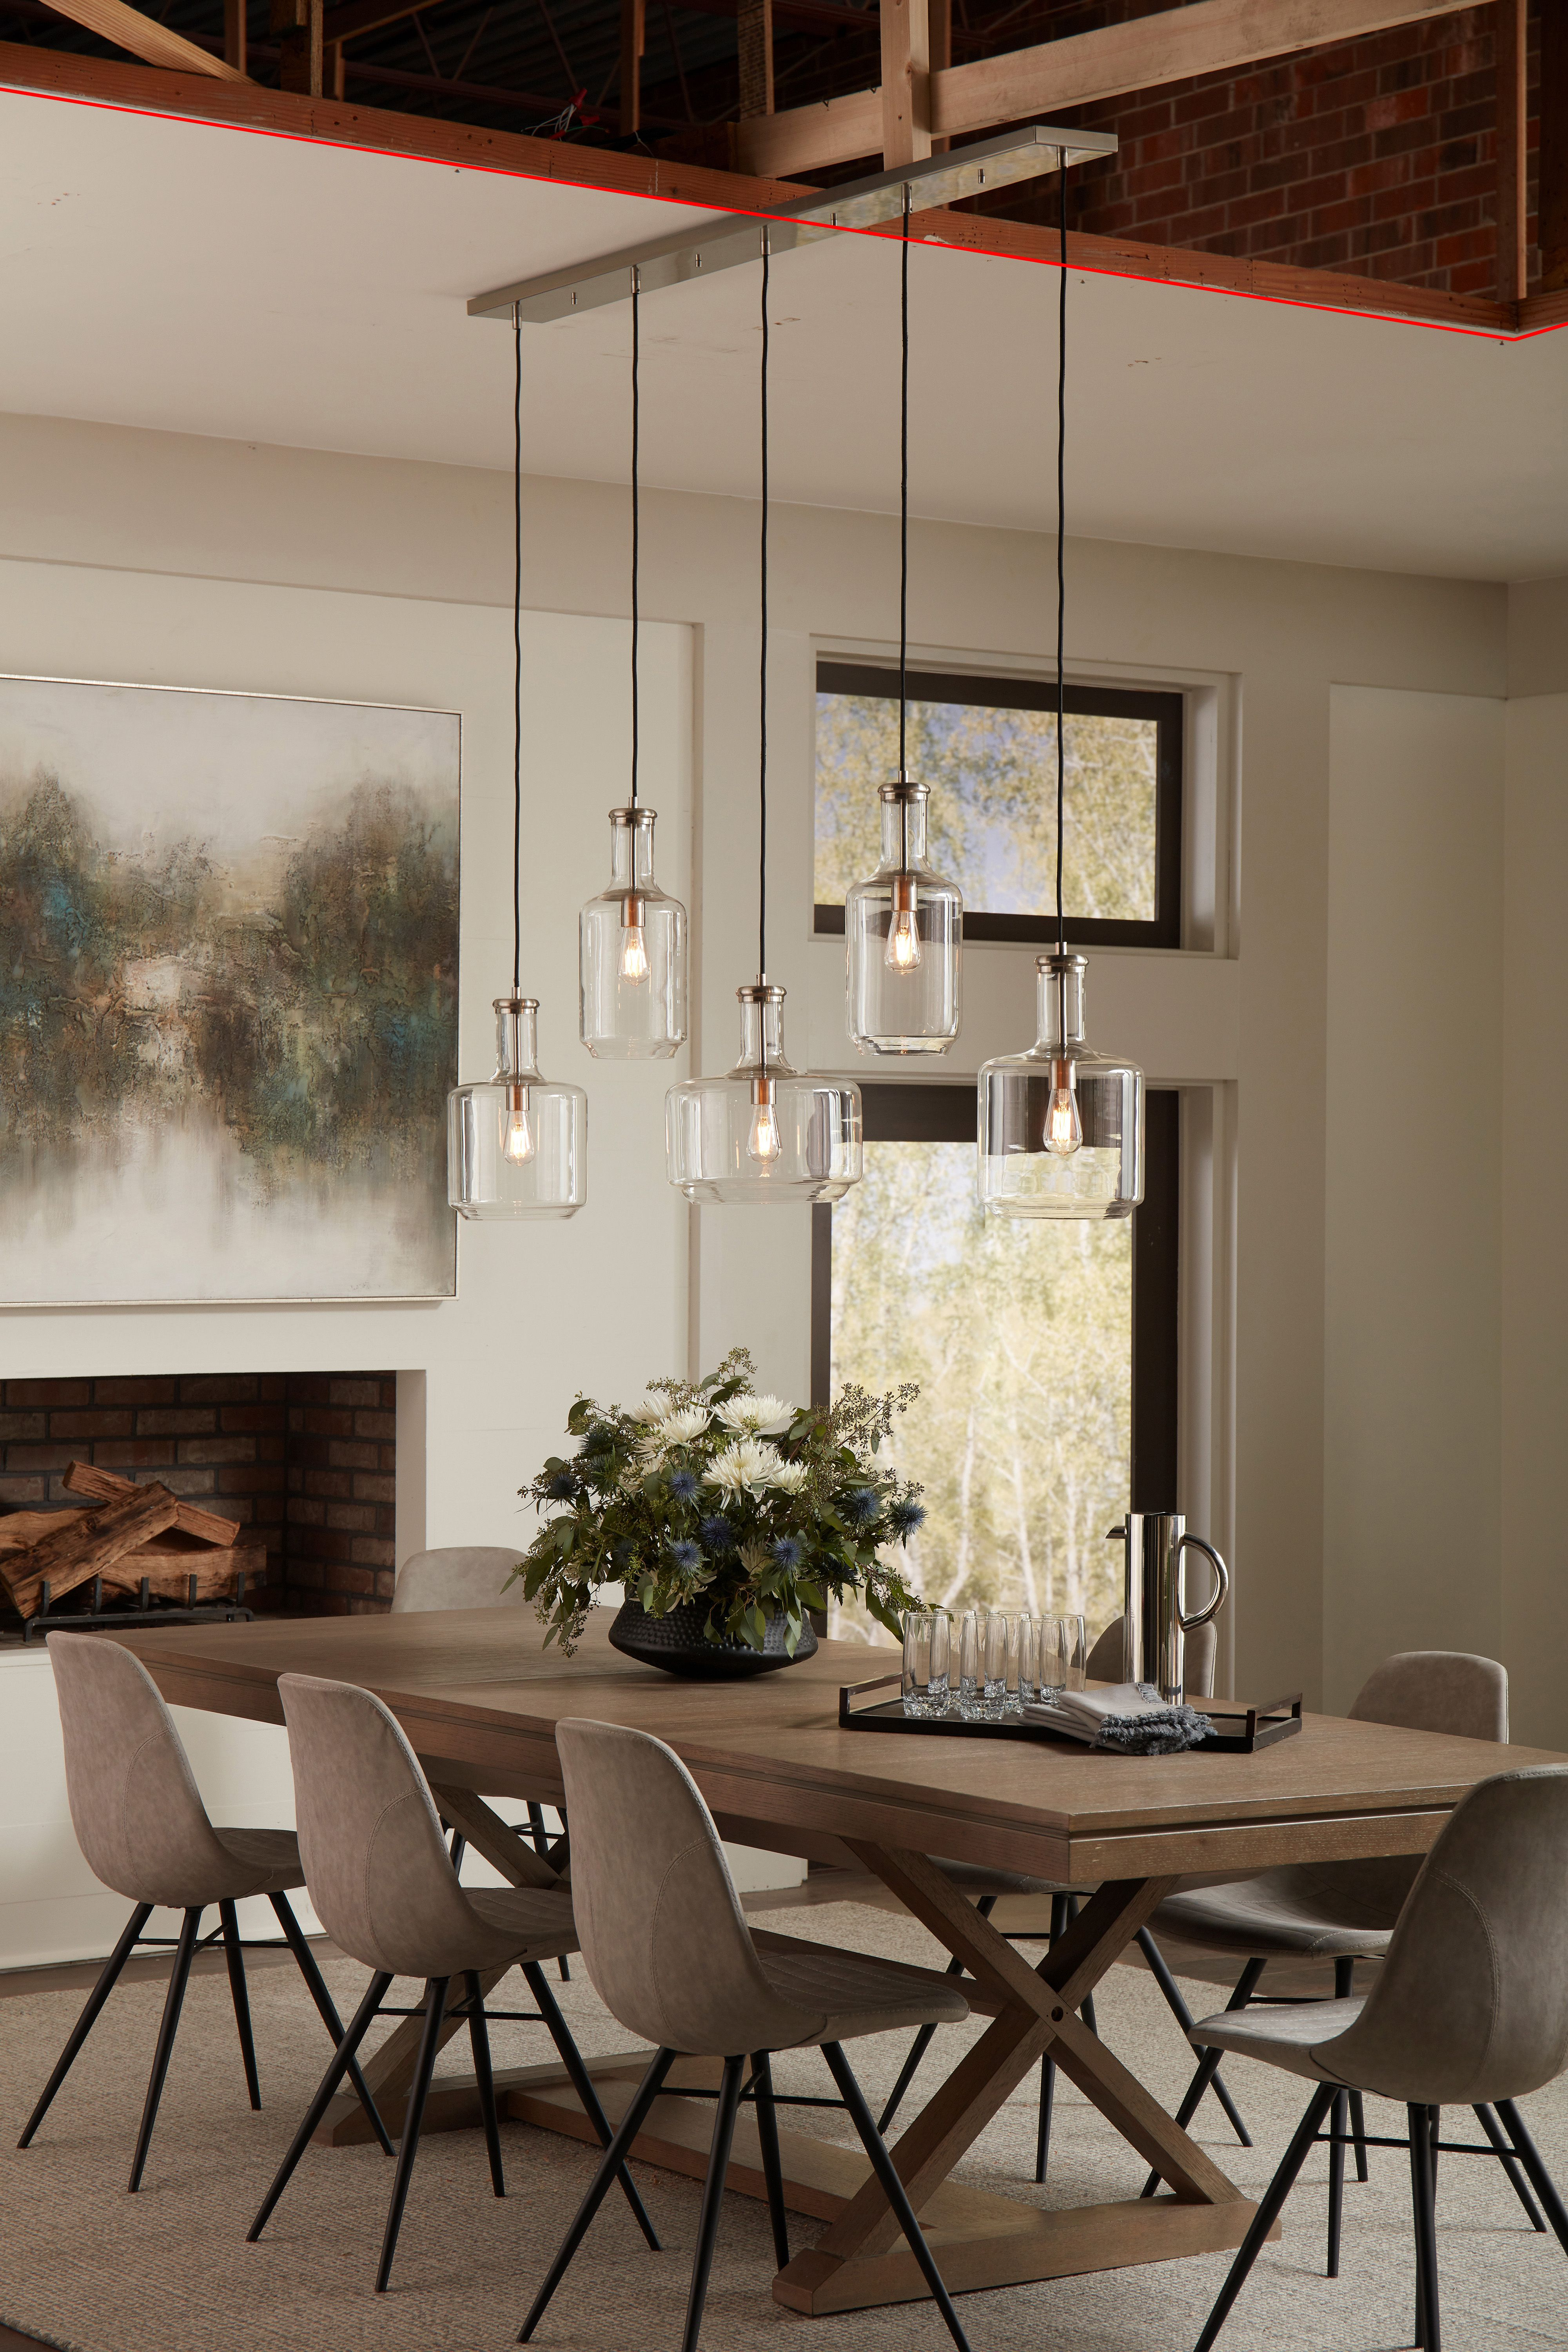 Modern Mountain Style Crisp Clean Lines In Dining Room Design Featuring Assorted Glass P Rustic Chandelier Dining Room Dining Room Lighting Rustic Dining Room